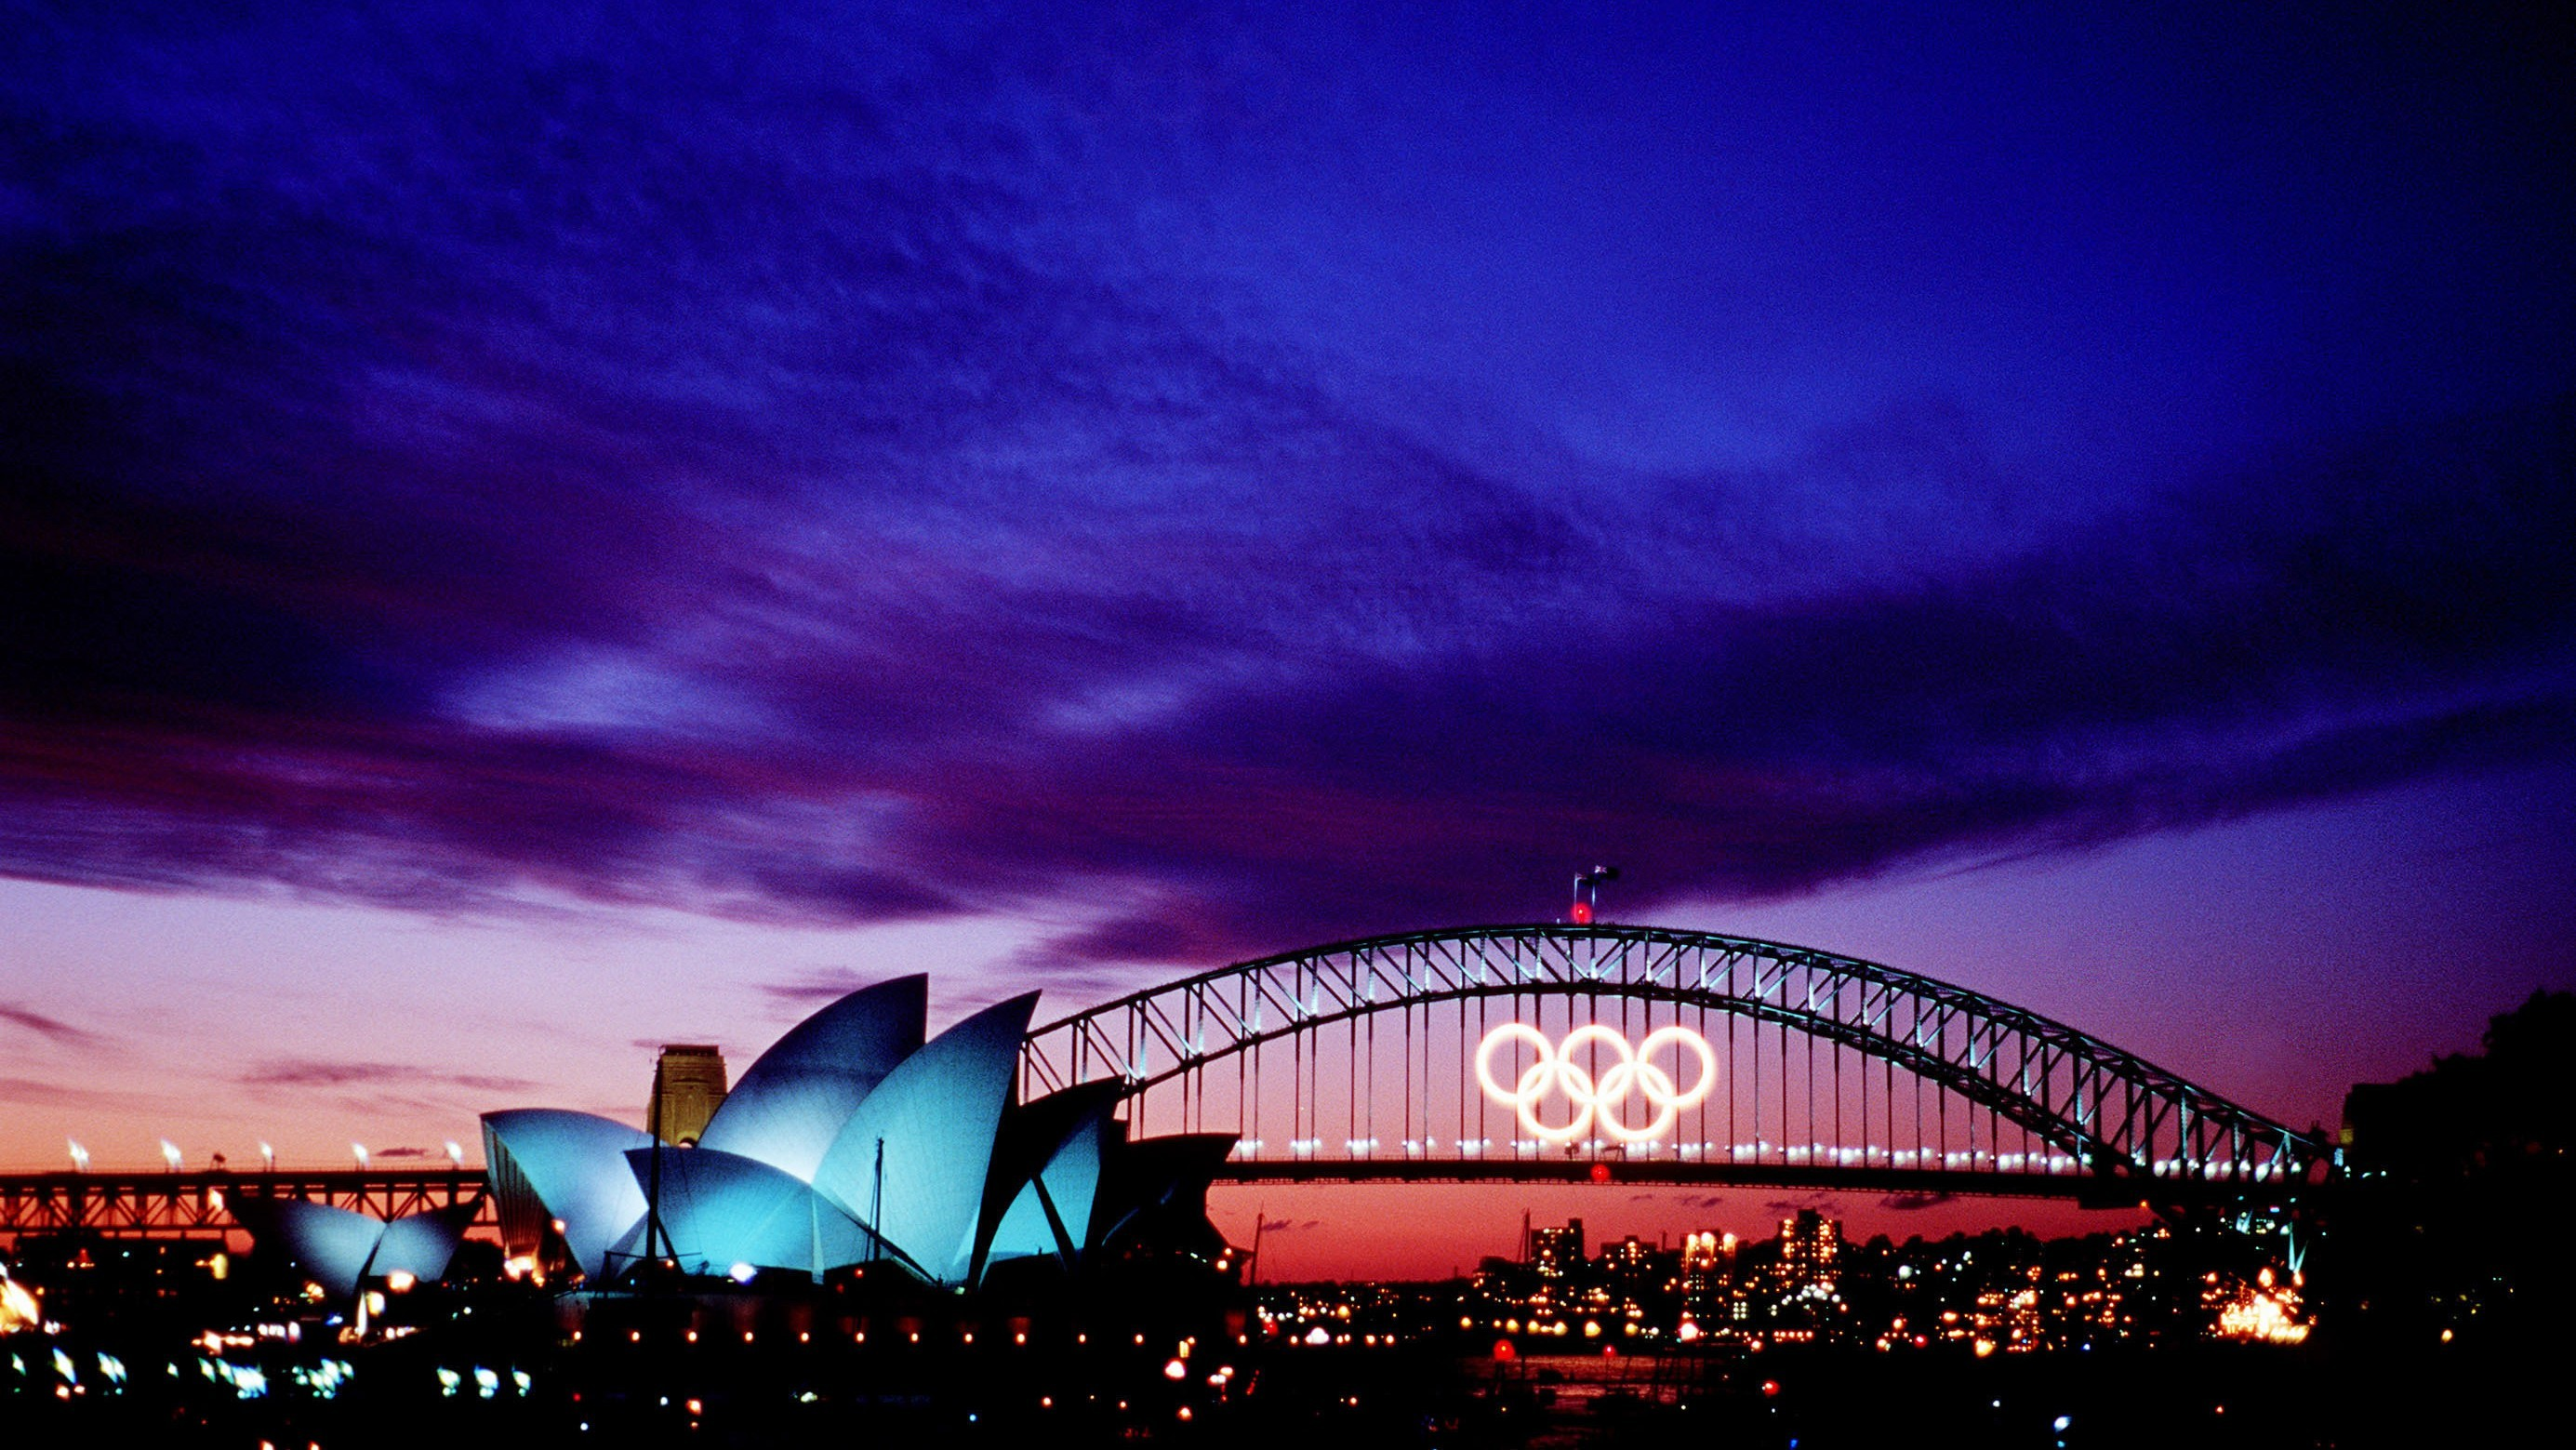 Highlights from Sydney's 2000 Olympics will officially be re-screened on TV